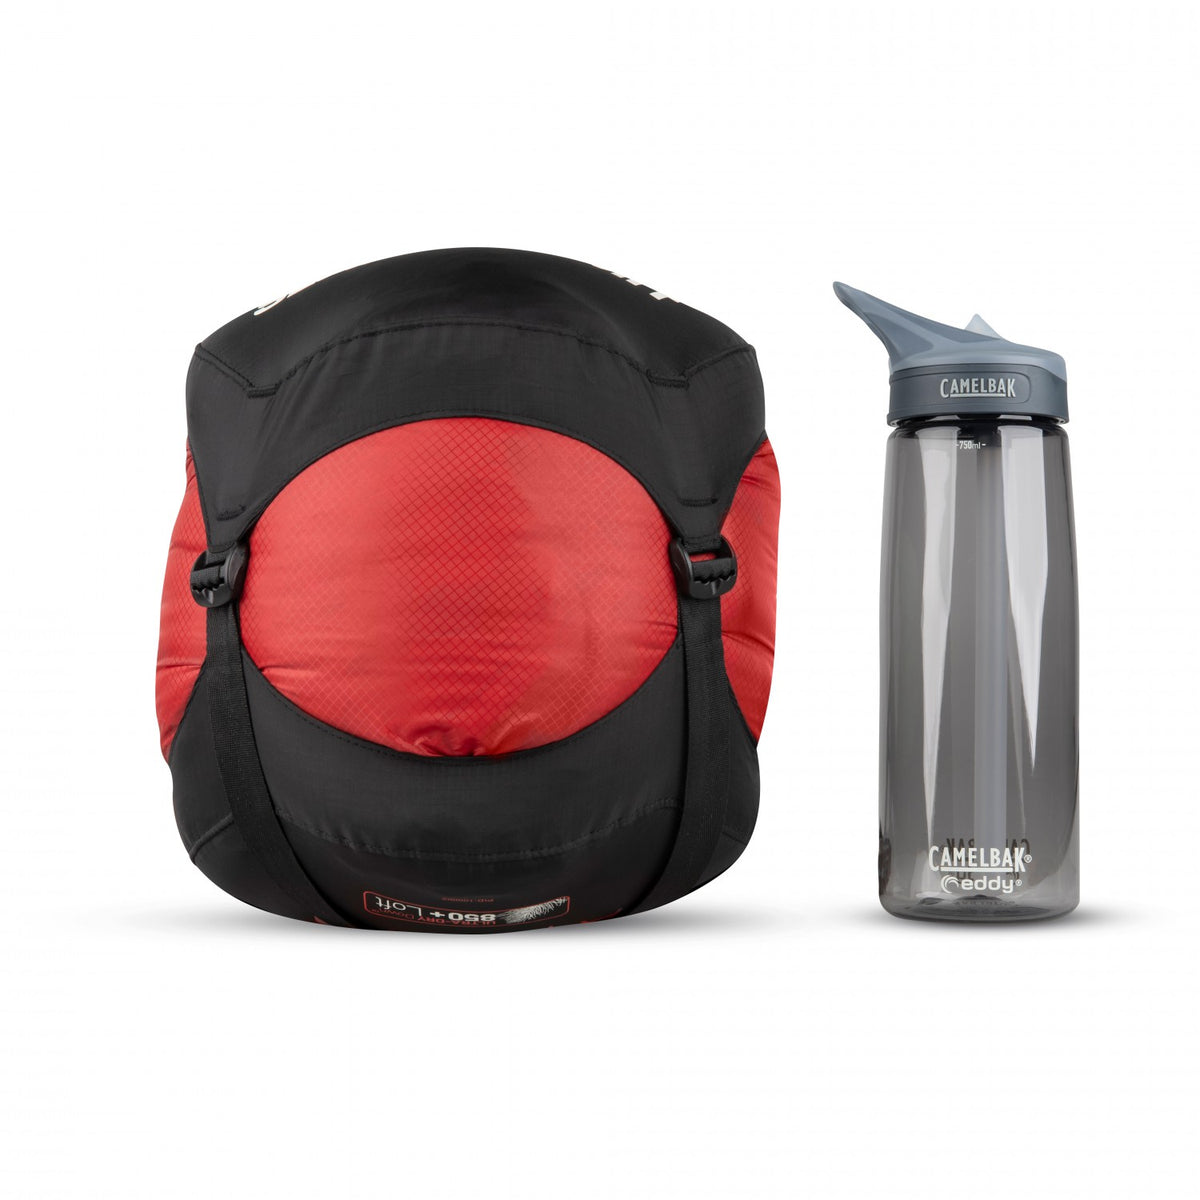 Sea to Summit Alpine II sleeping bag shown in carry case next to water bottle for size